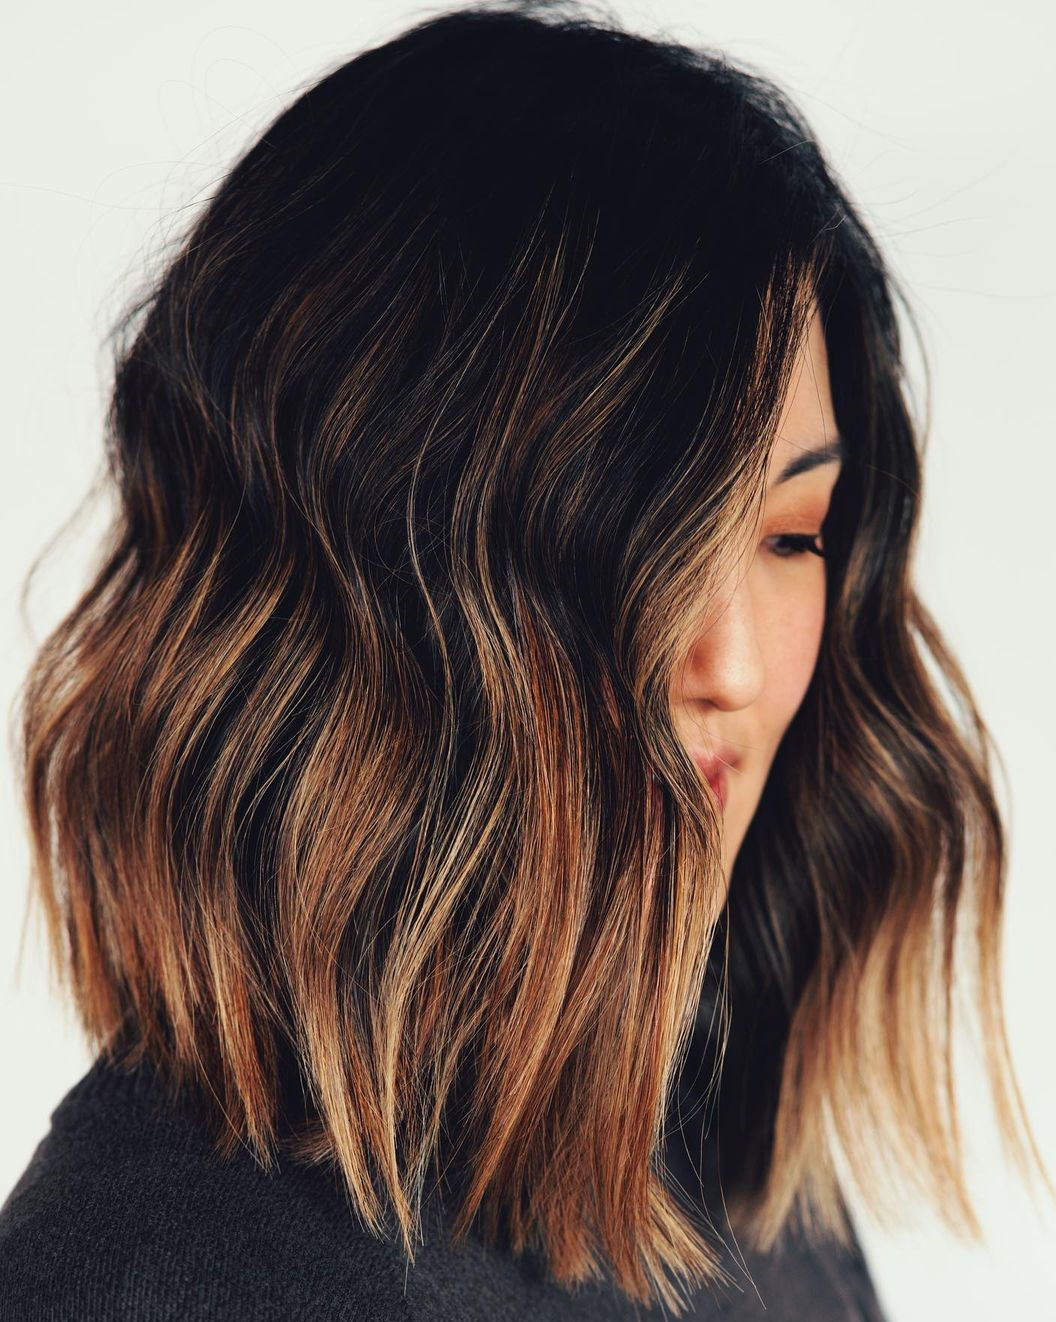 Black Hair with Midshaft Golden Brown Highlights